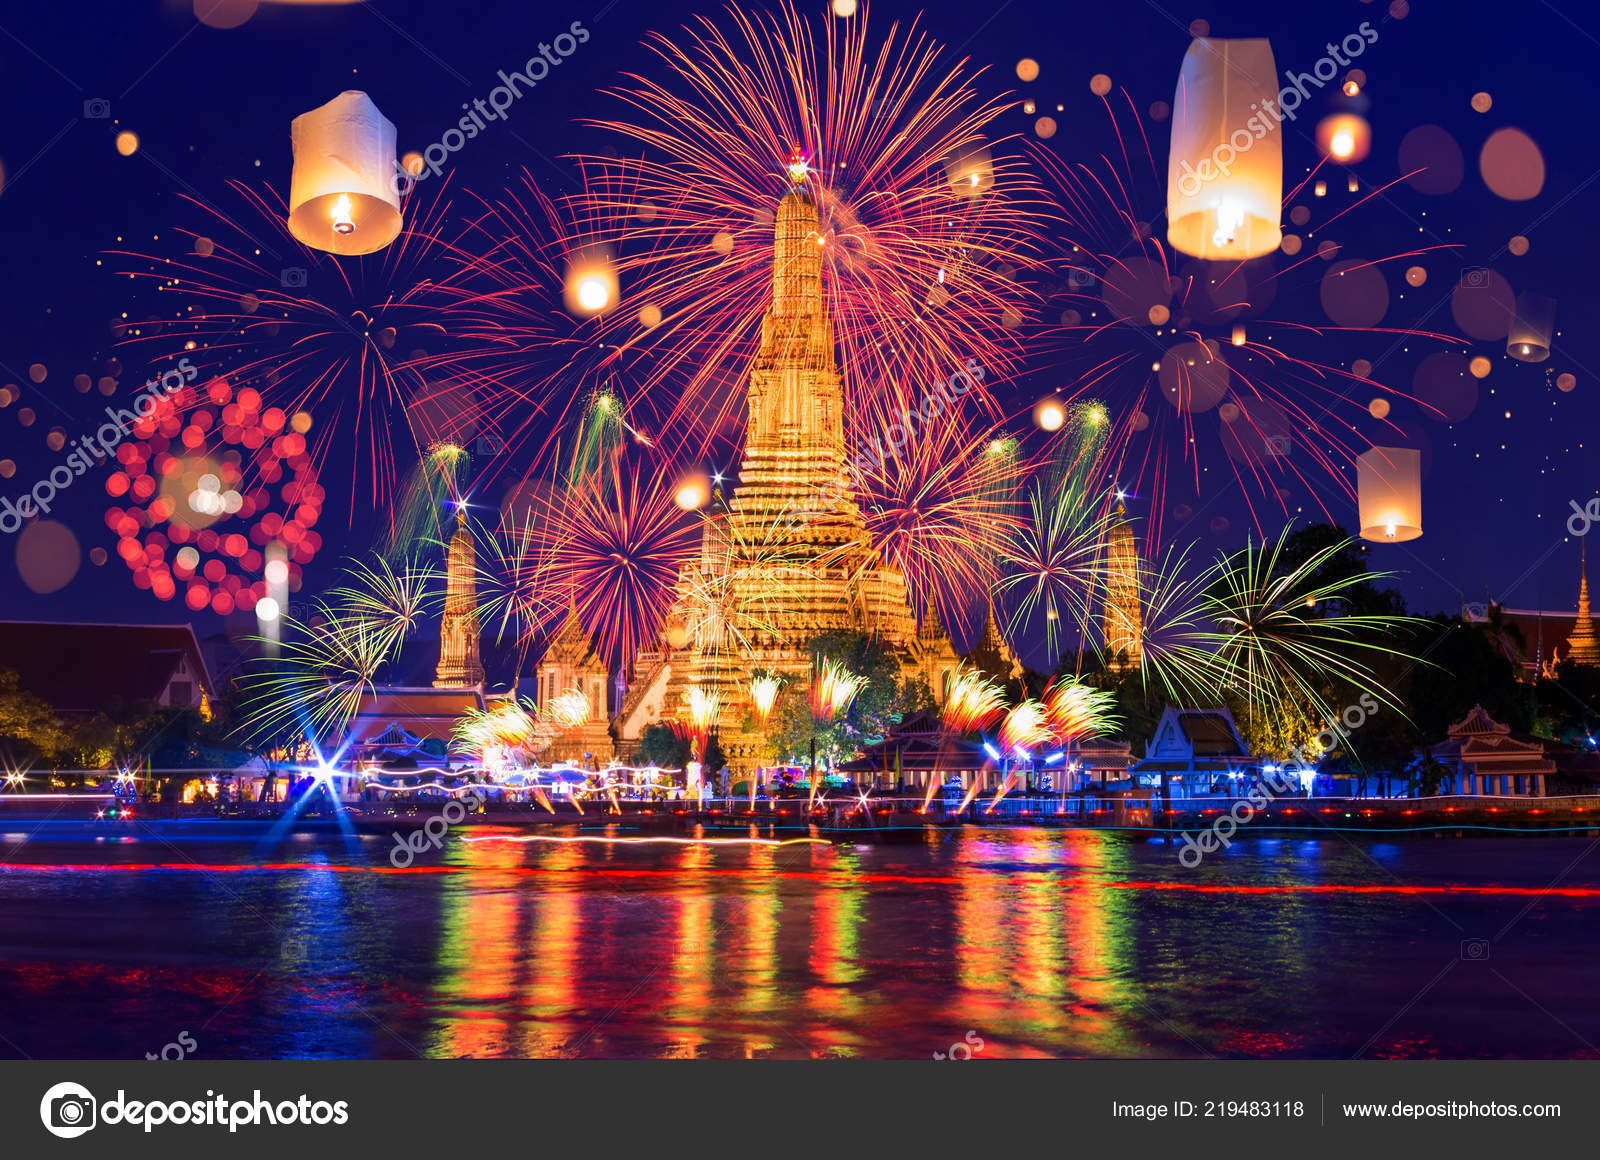 bangkok happy new year countdown fireworks and lanterns at wat arun temple bangkok thailand photo by nirutdps